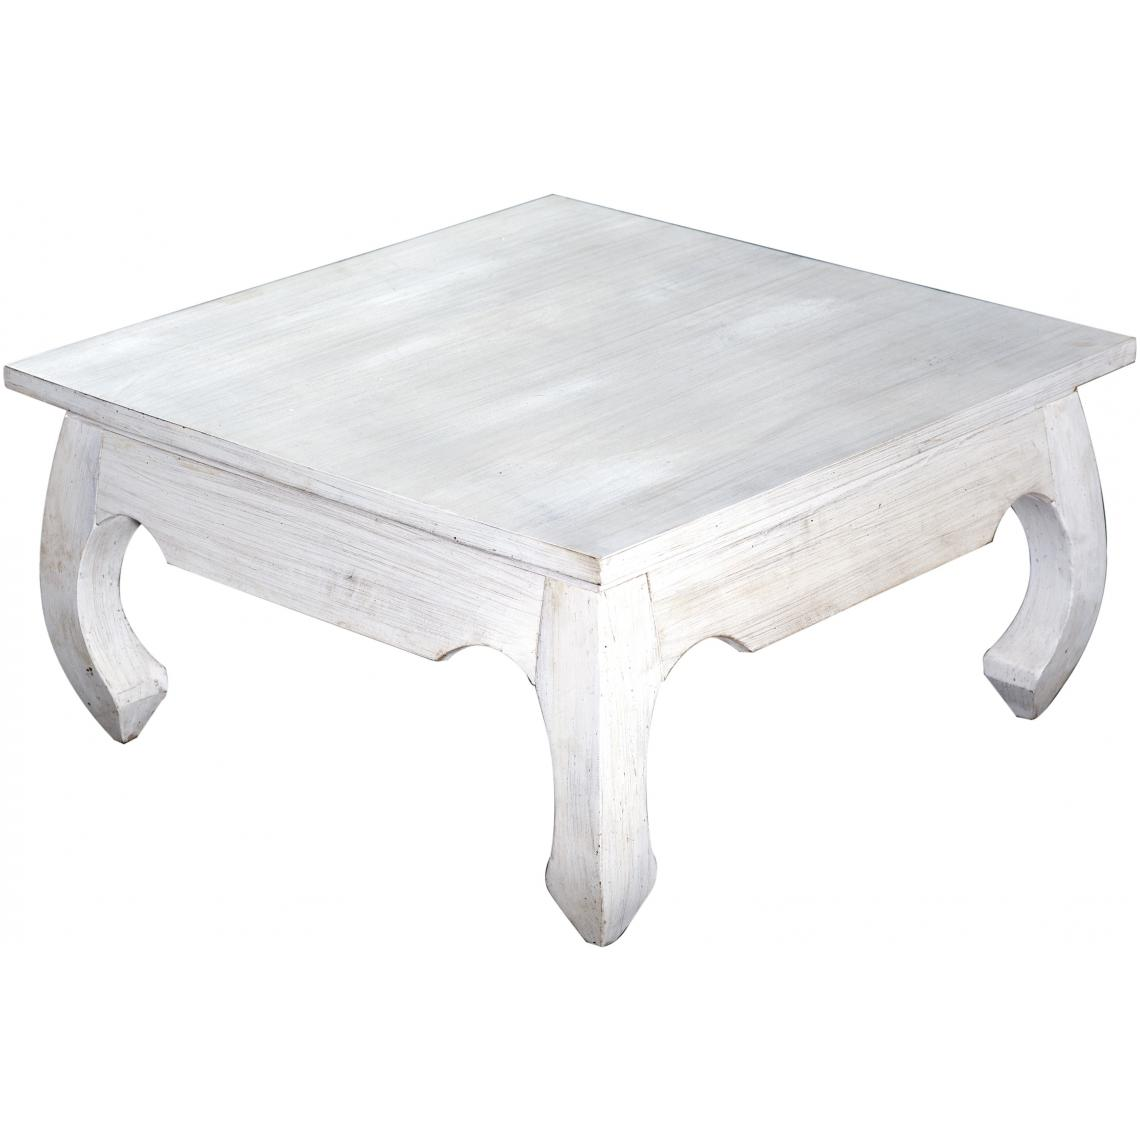 table basse carree en bois blanc